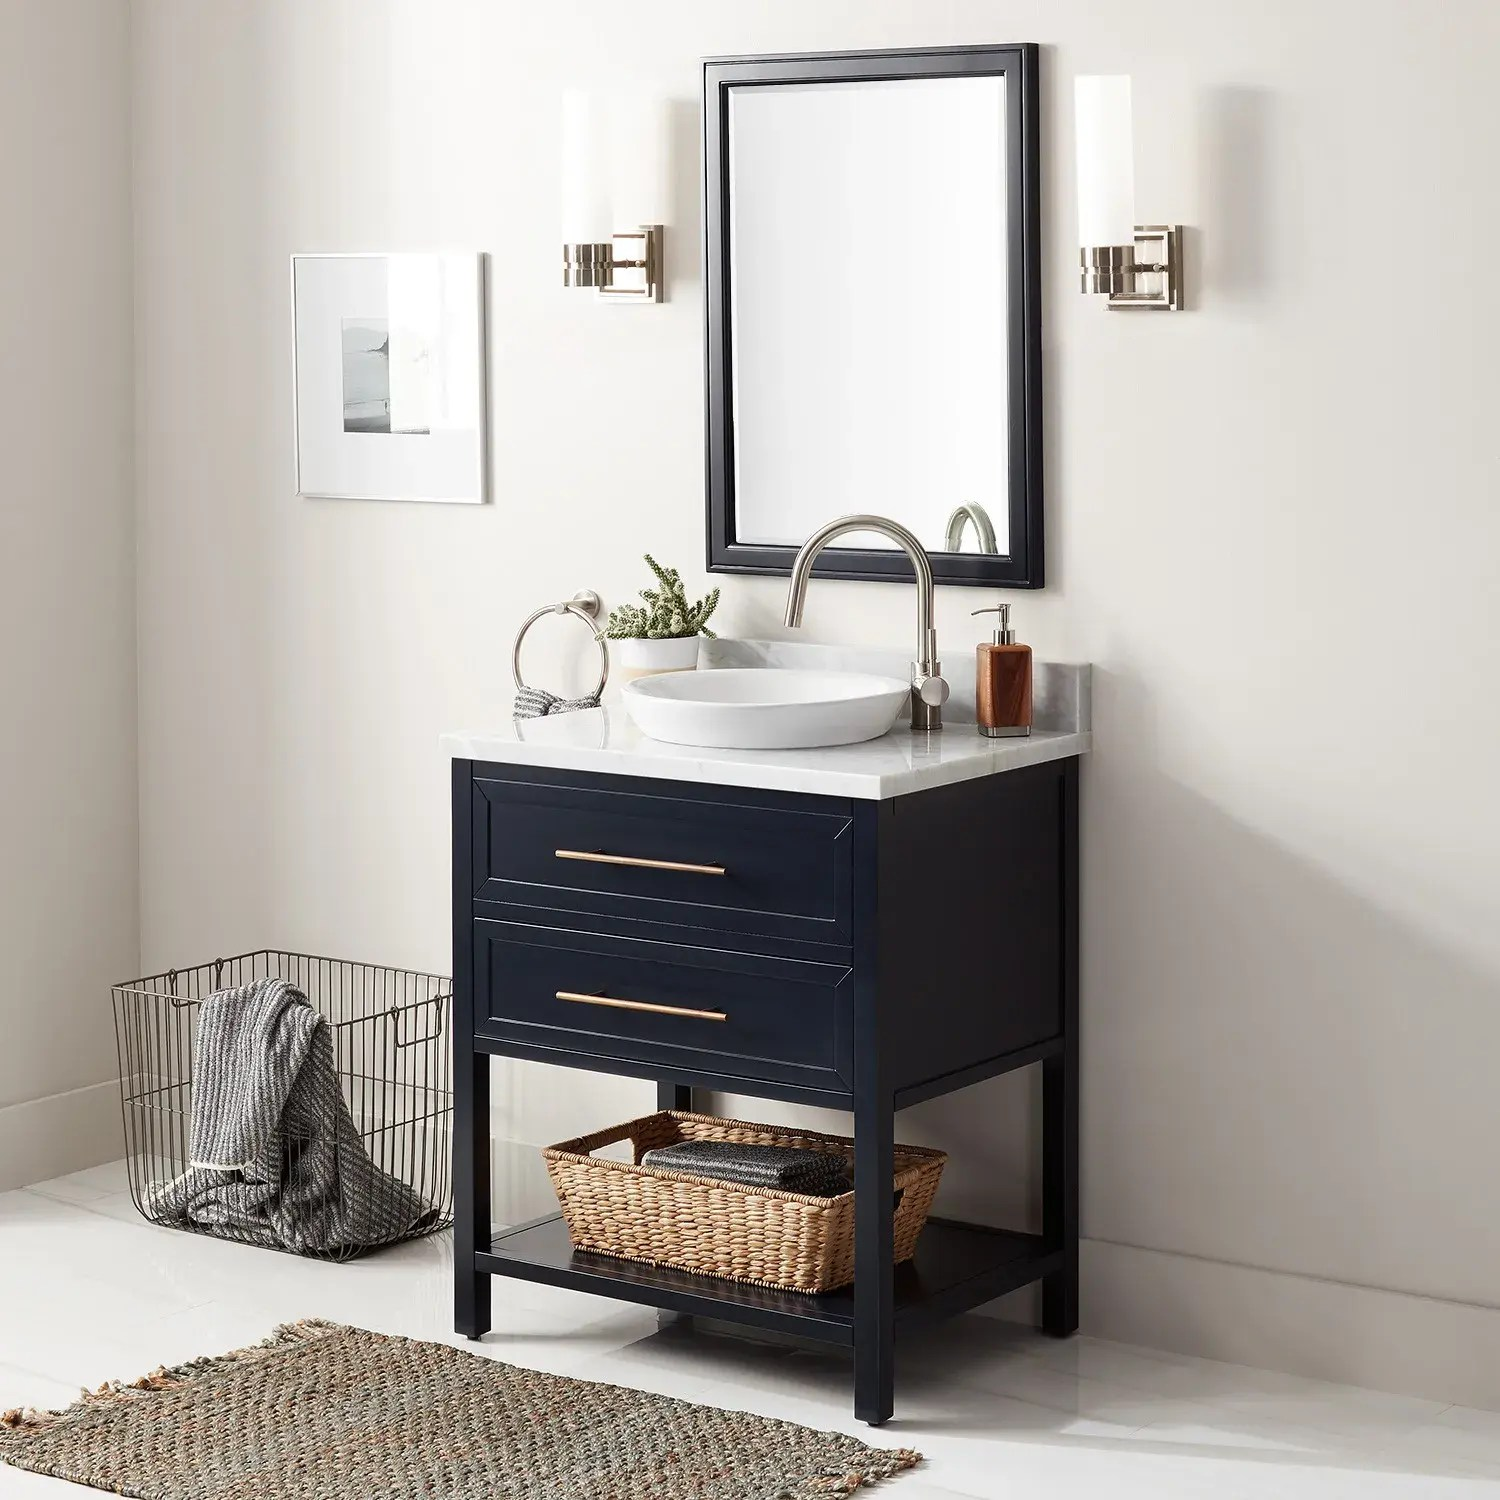 30 robertson console vanity for semi recessed sink midnight navy blue